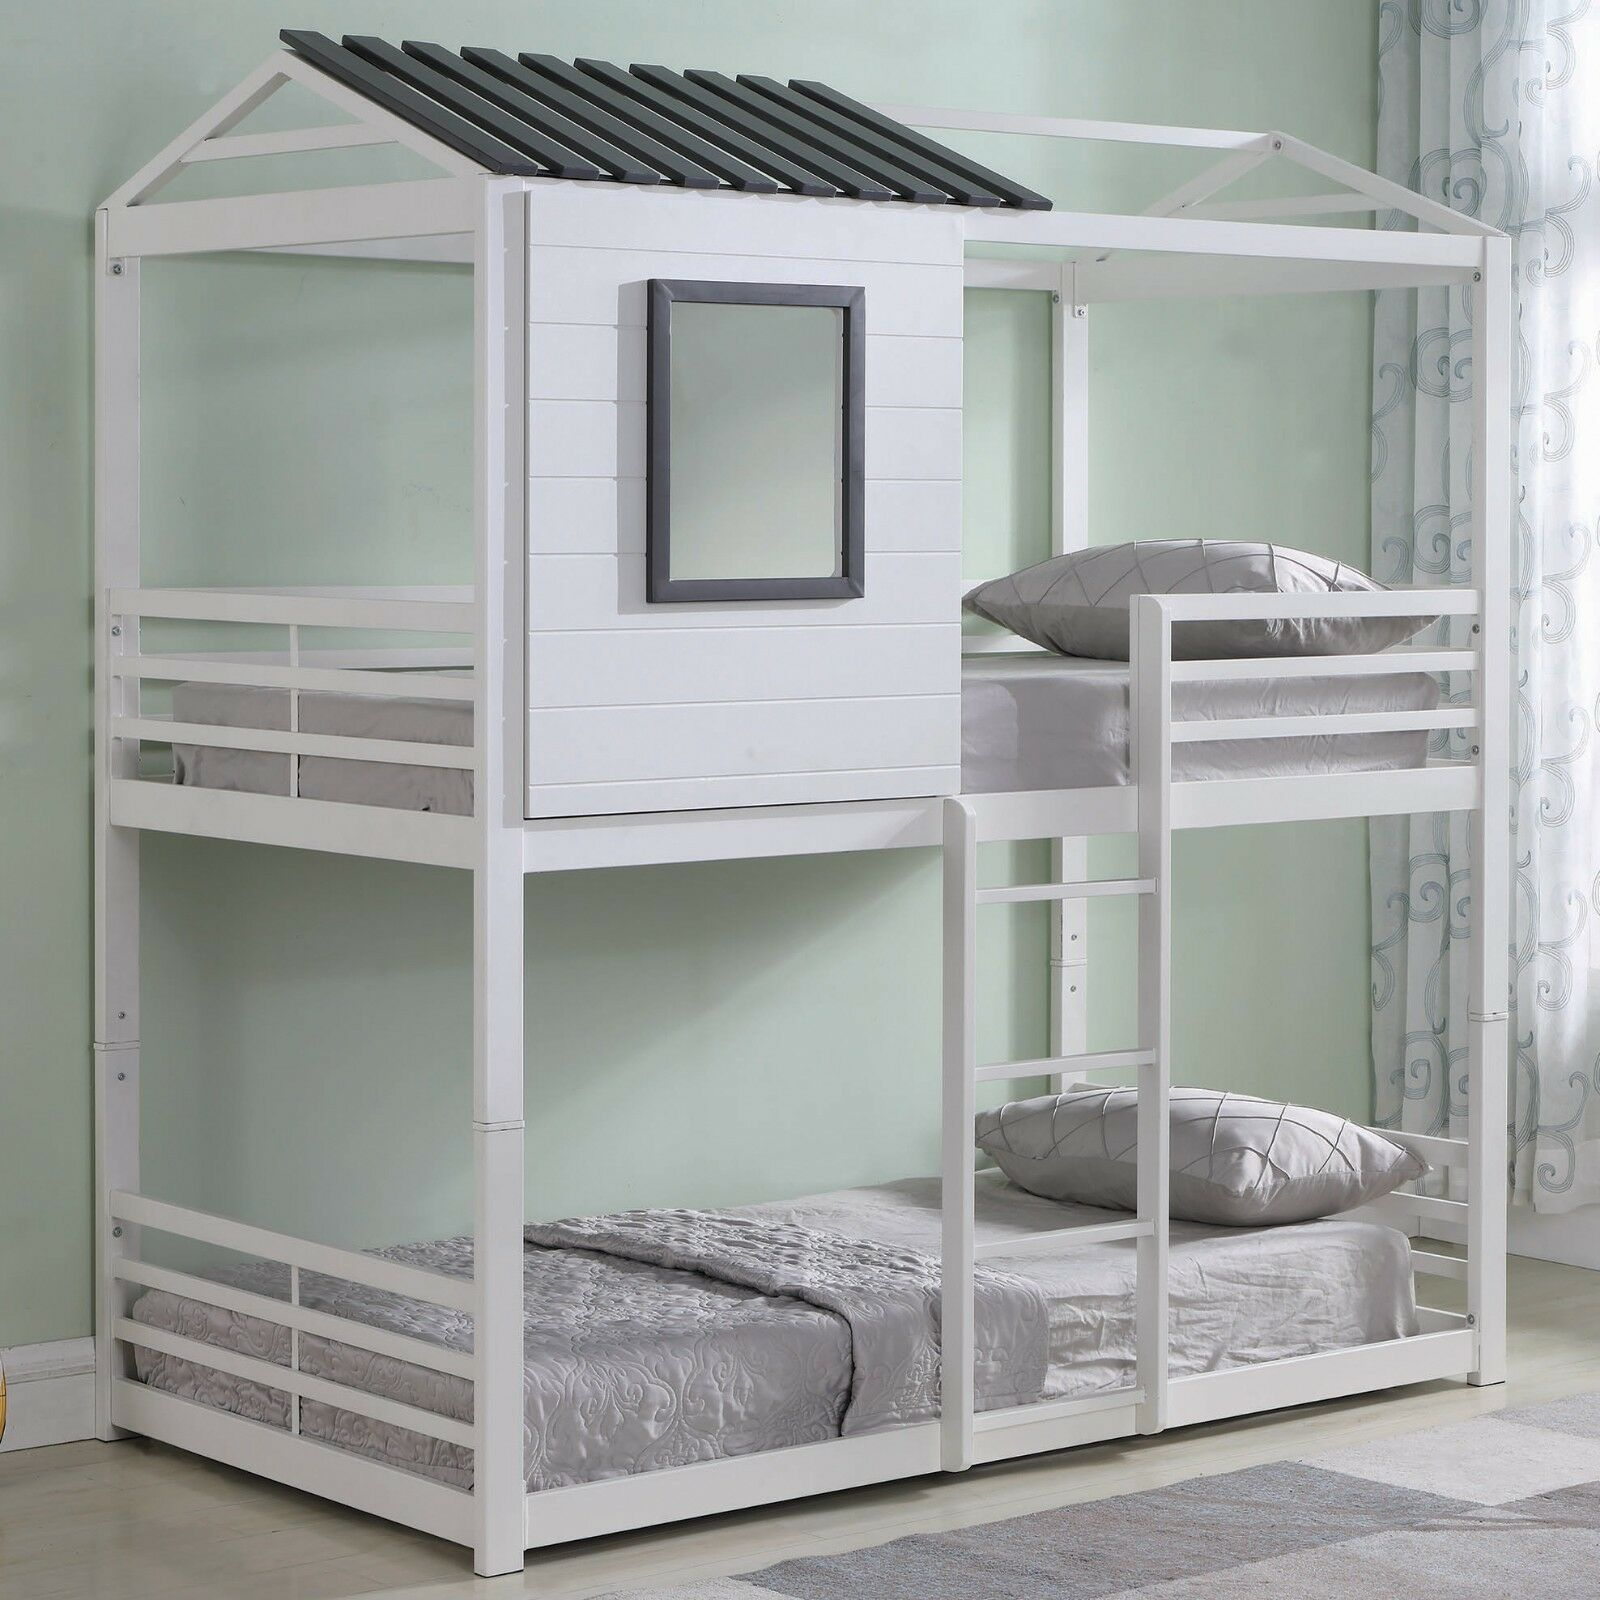 Picture of: Youth Kids Modern House Themed Heavy Duty Metal Bunk Bed Twin Over Twin White For Sale Online